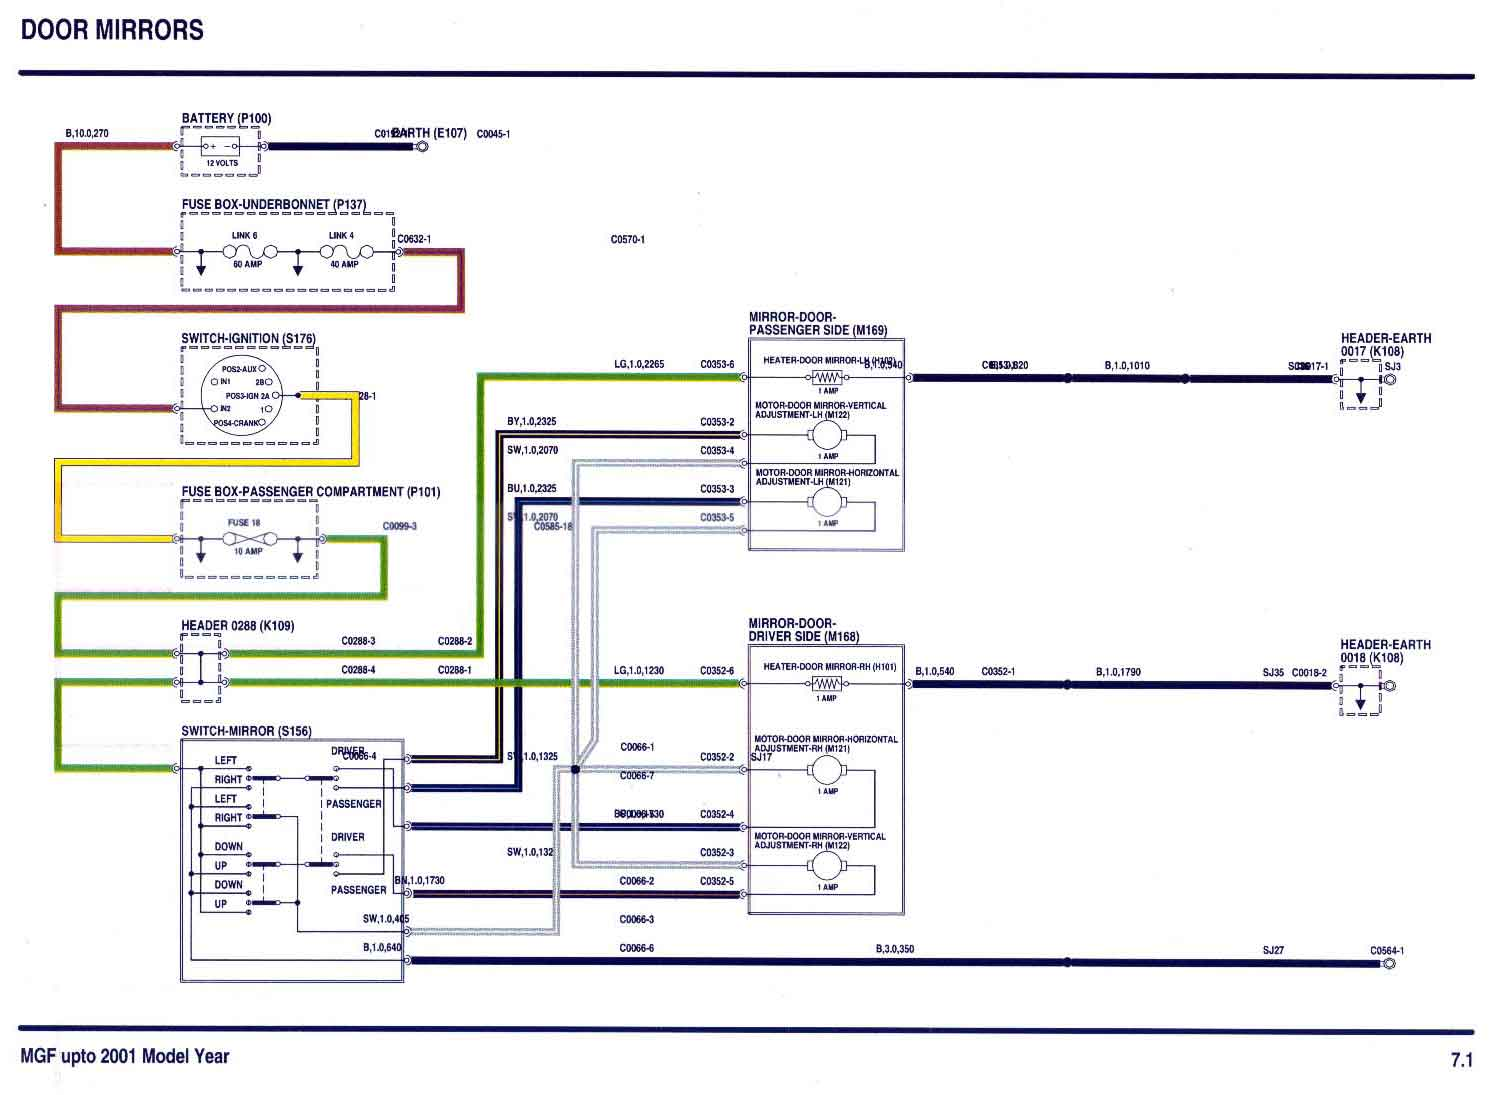 Mirrors electrical circuits rover 45 wiring diagram at virtualis.co